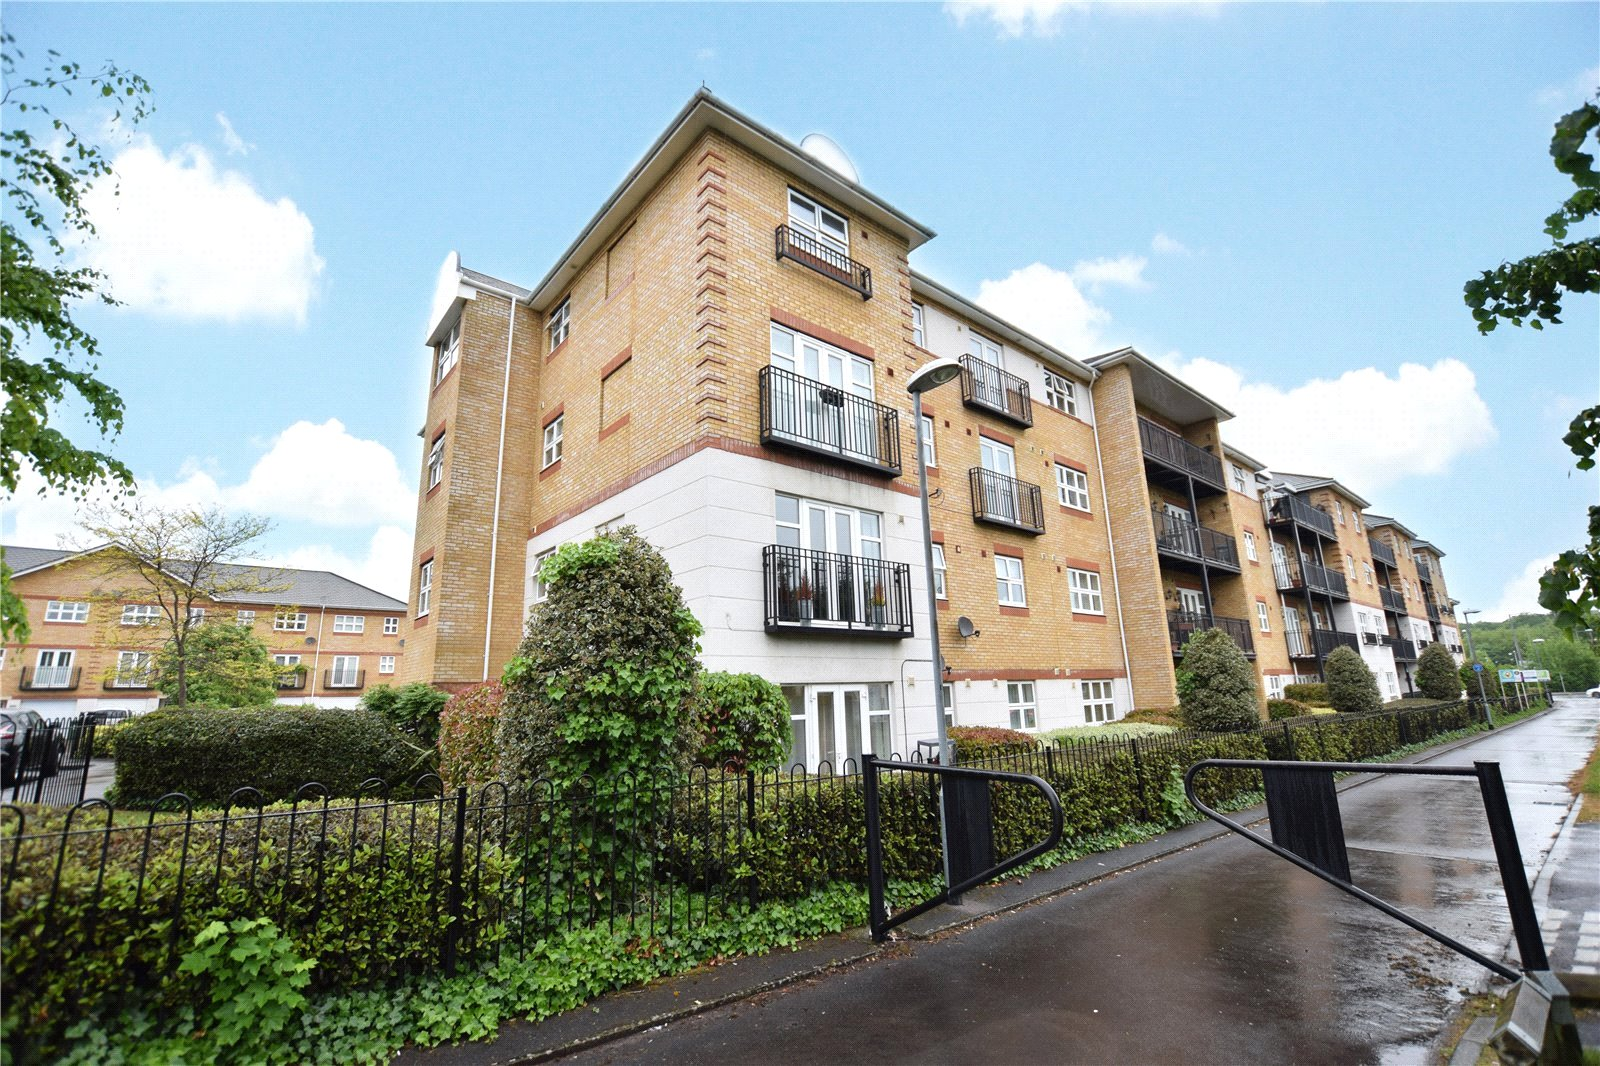 2 Bedrooms Apartment Flat for sale in Ogden Park, Bracknell, Berkshire, RG12